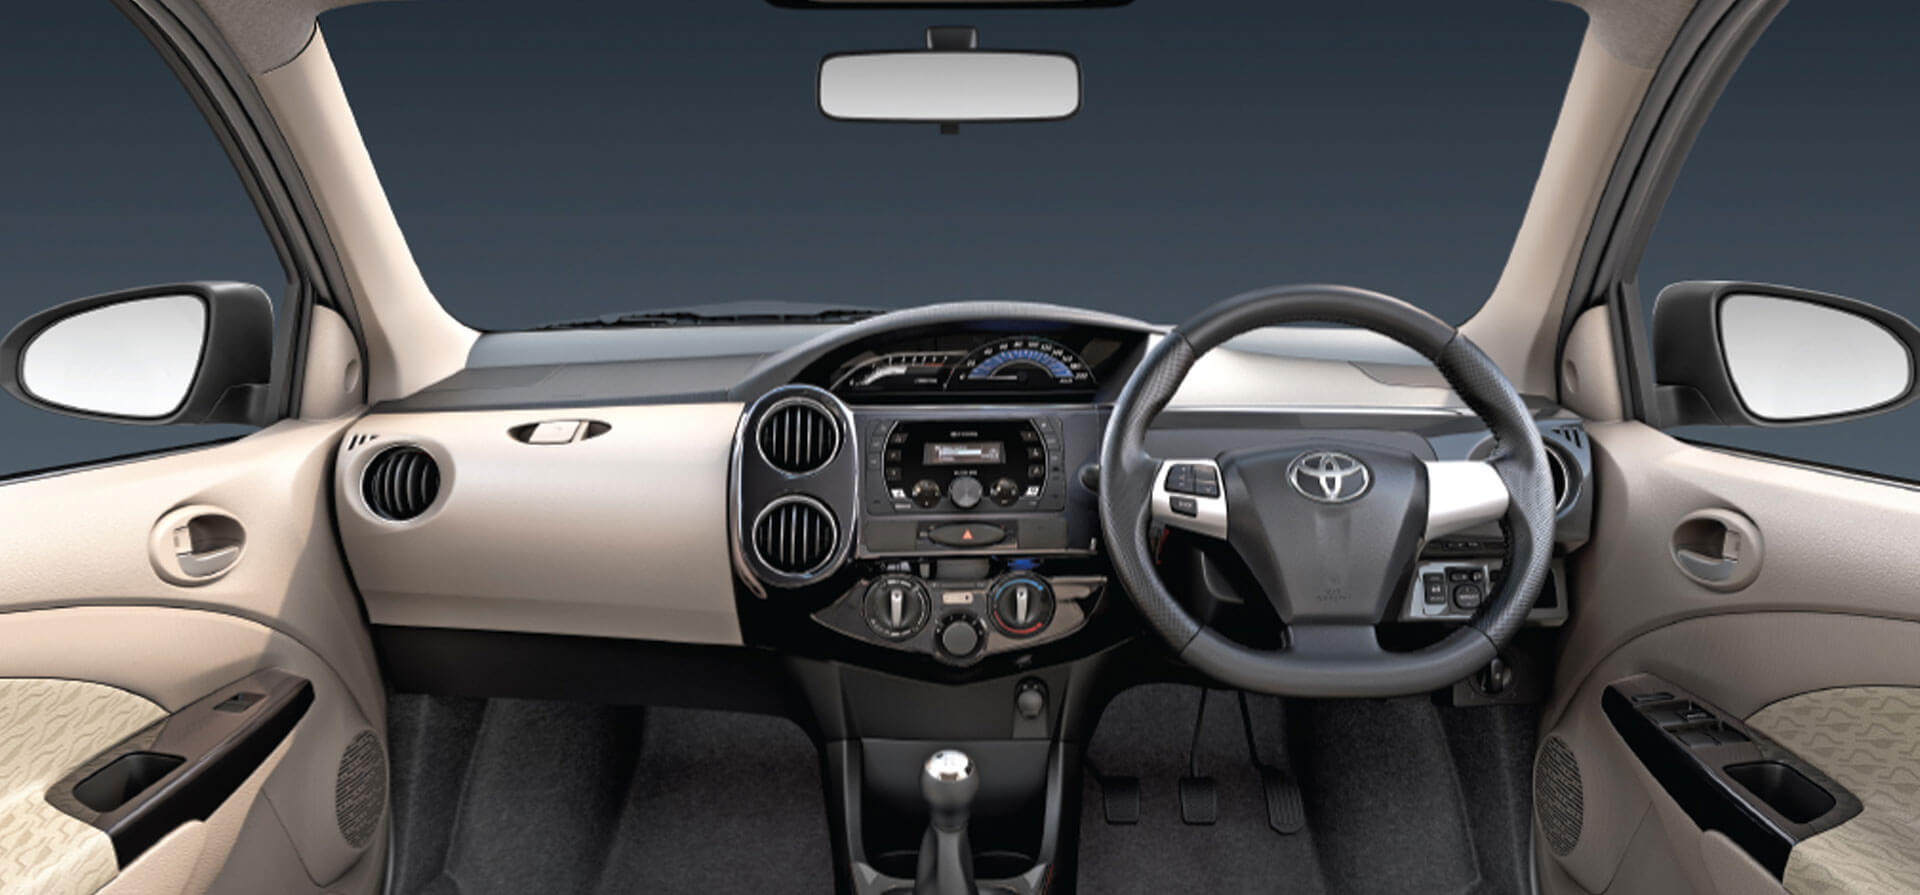 Instrument Panel with Piano Black Finish